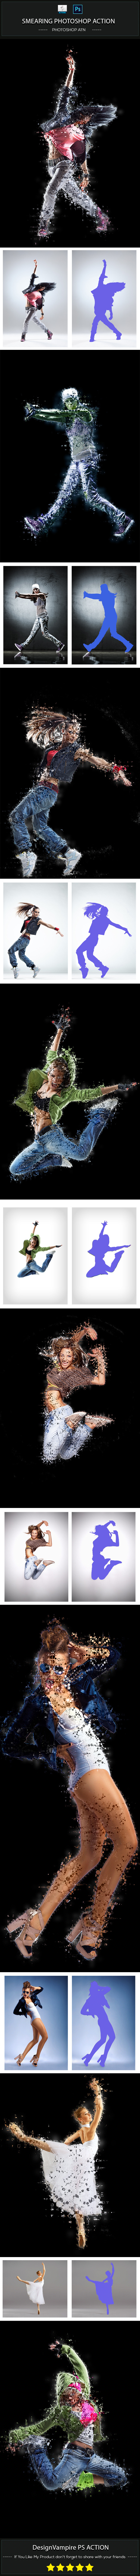 GraphicRiver Smearing Photoshop Action 9511357